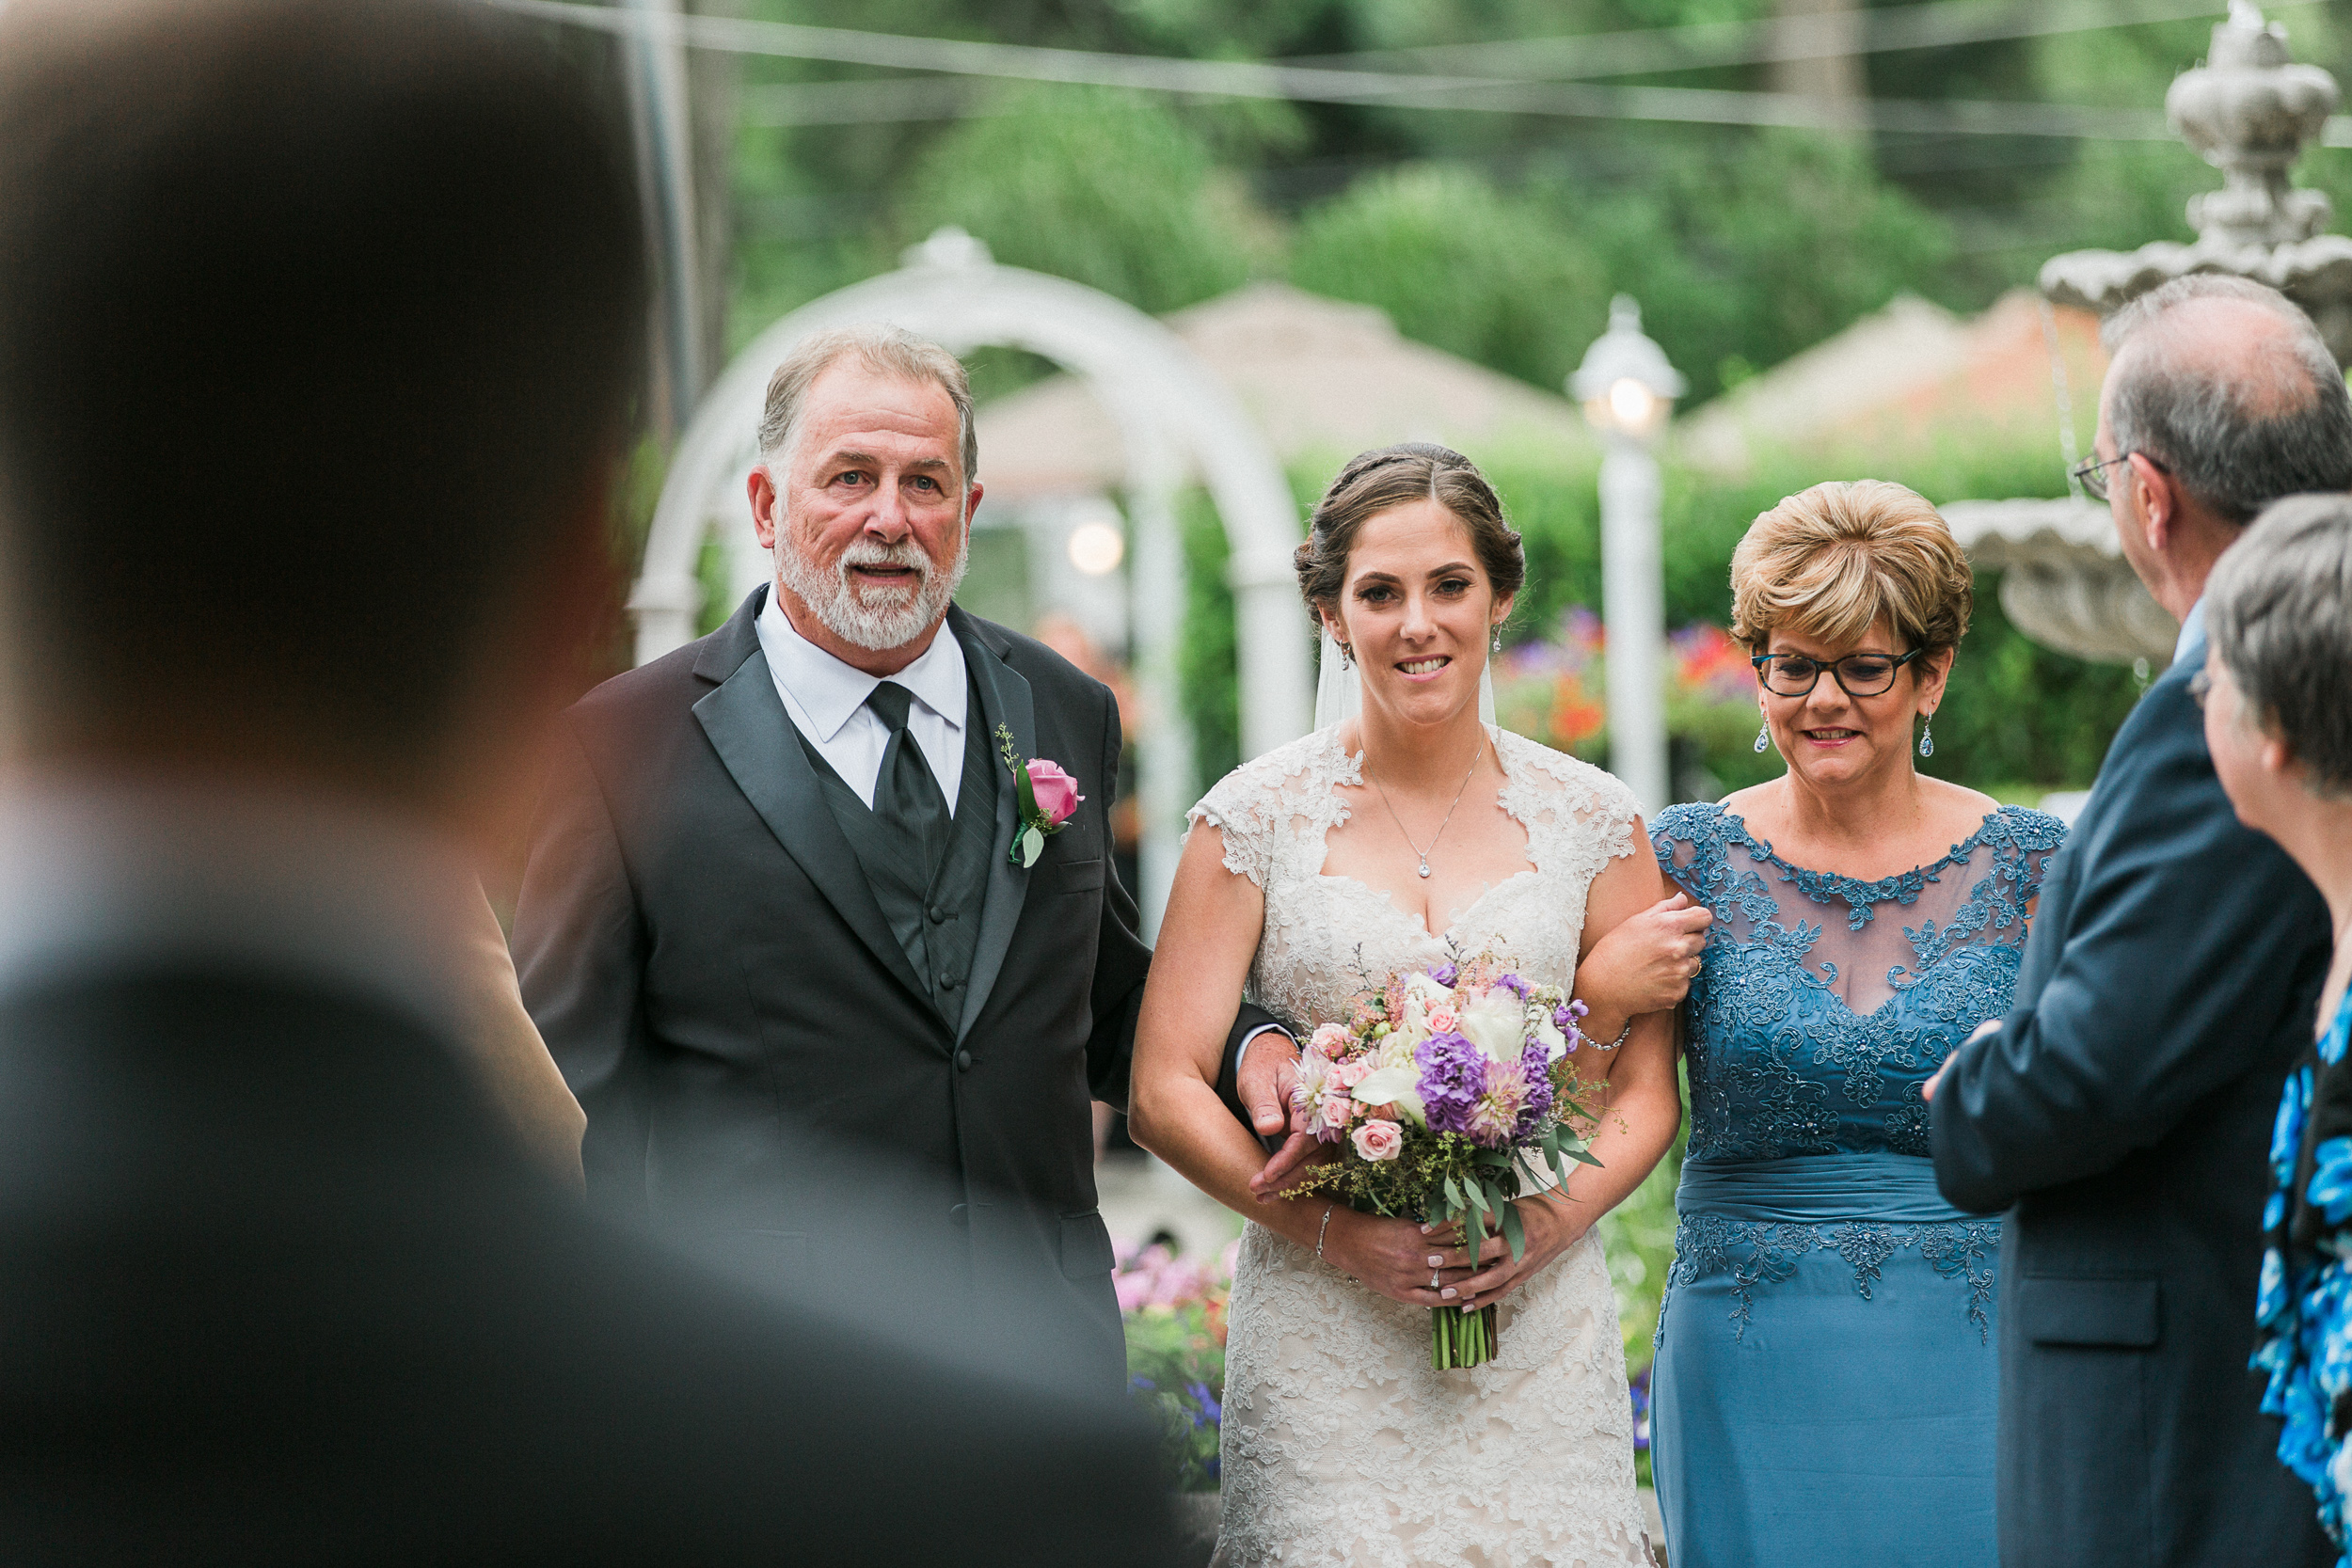 Washington Crossing PA Wedding WRHPhotography-31.jpg